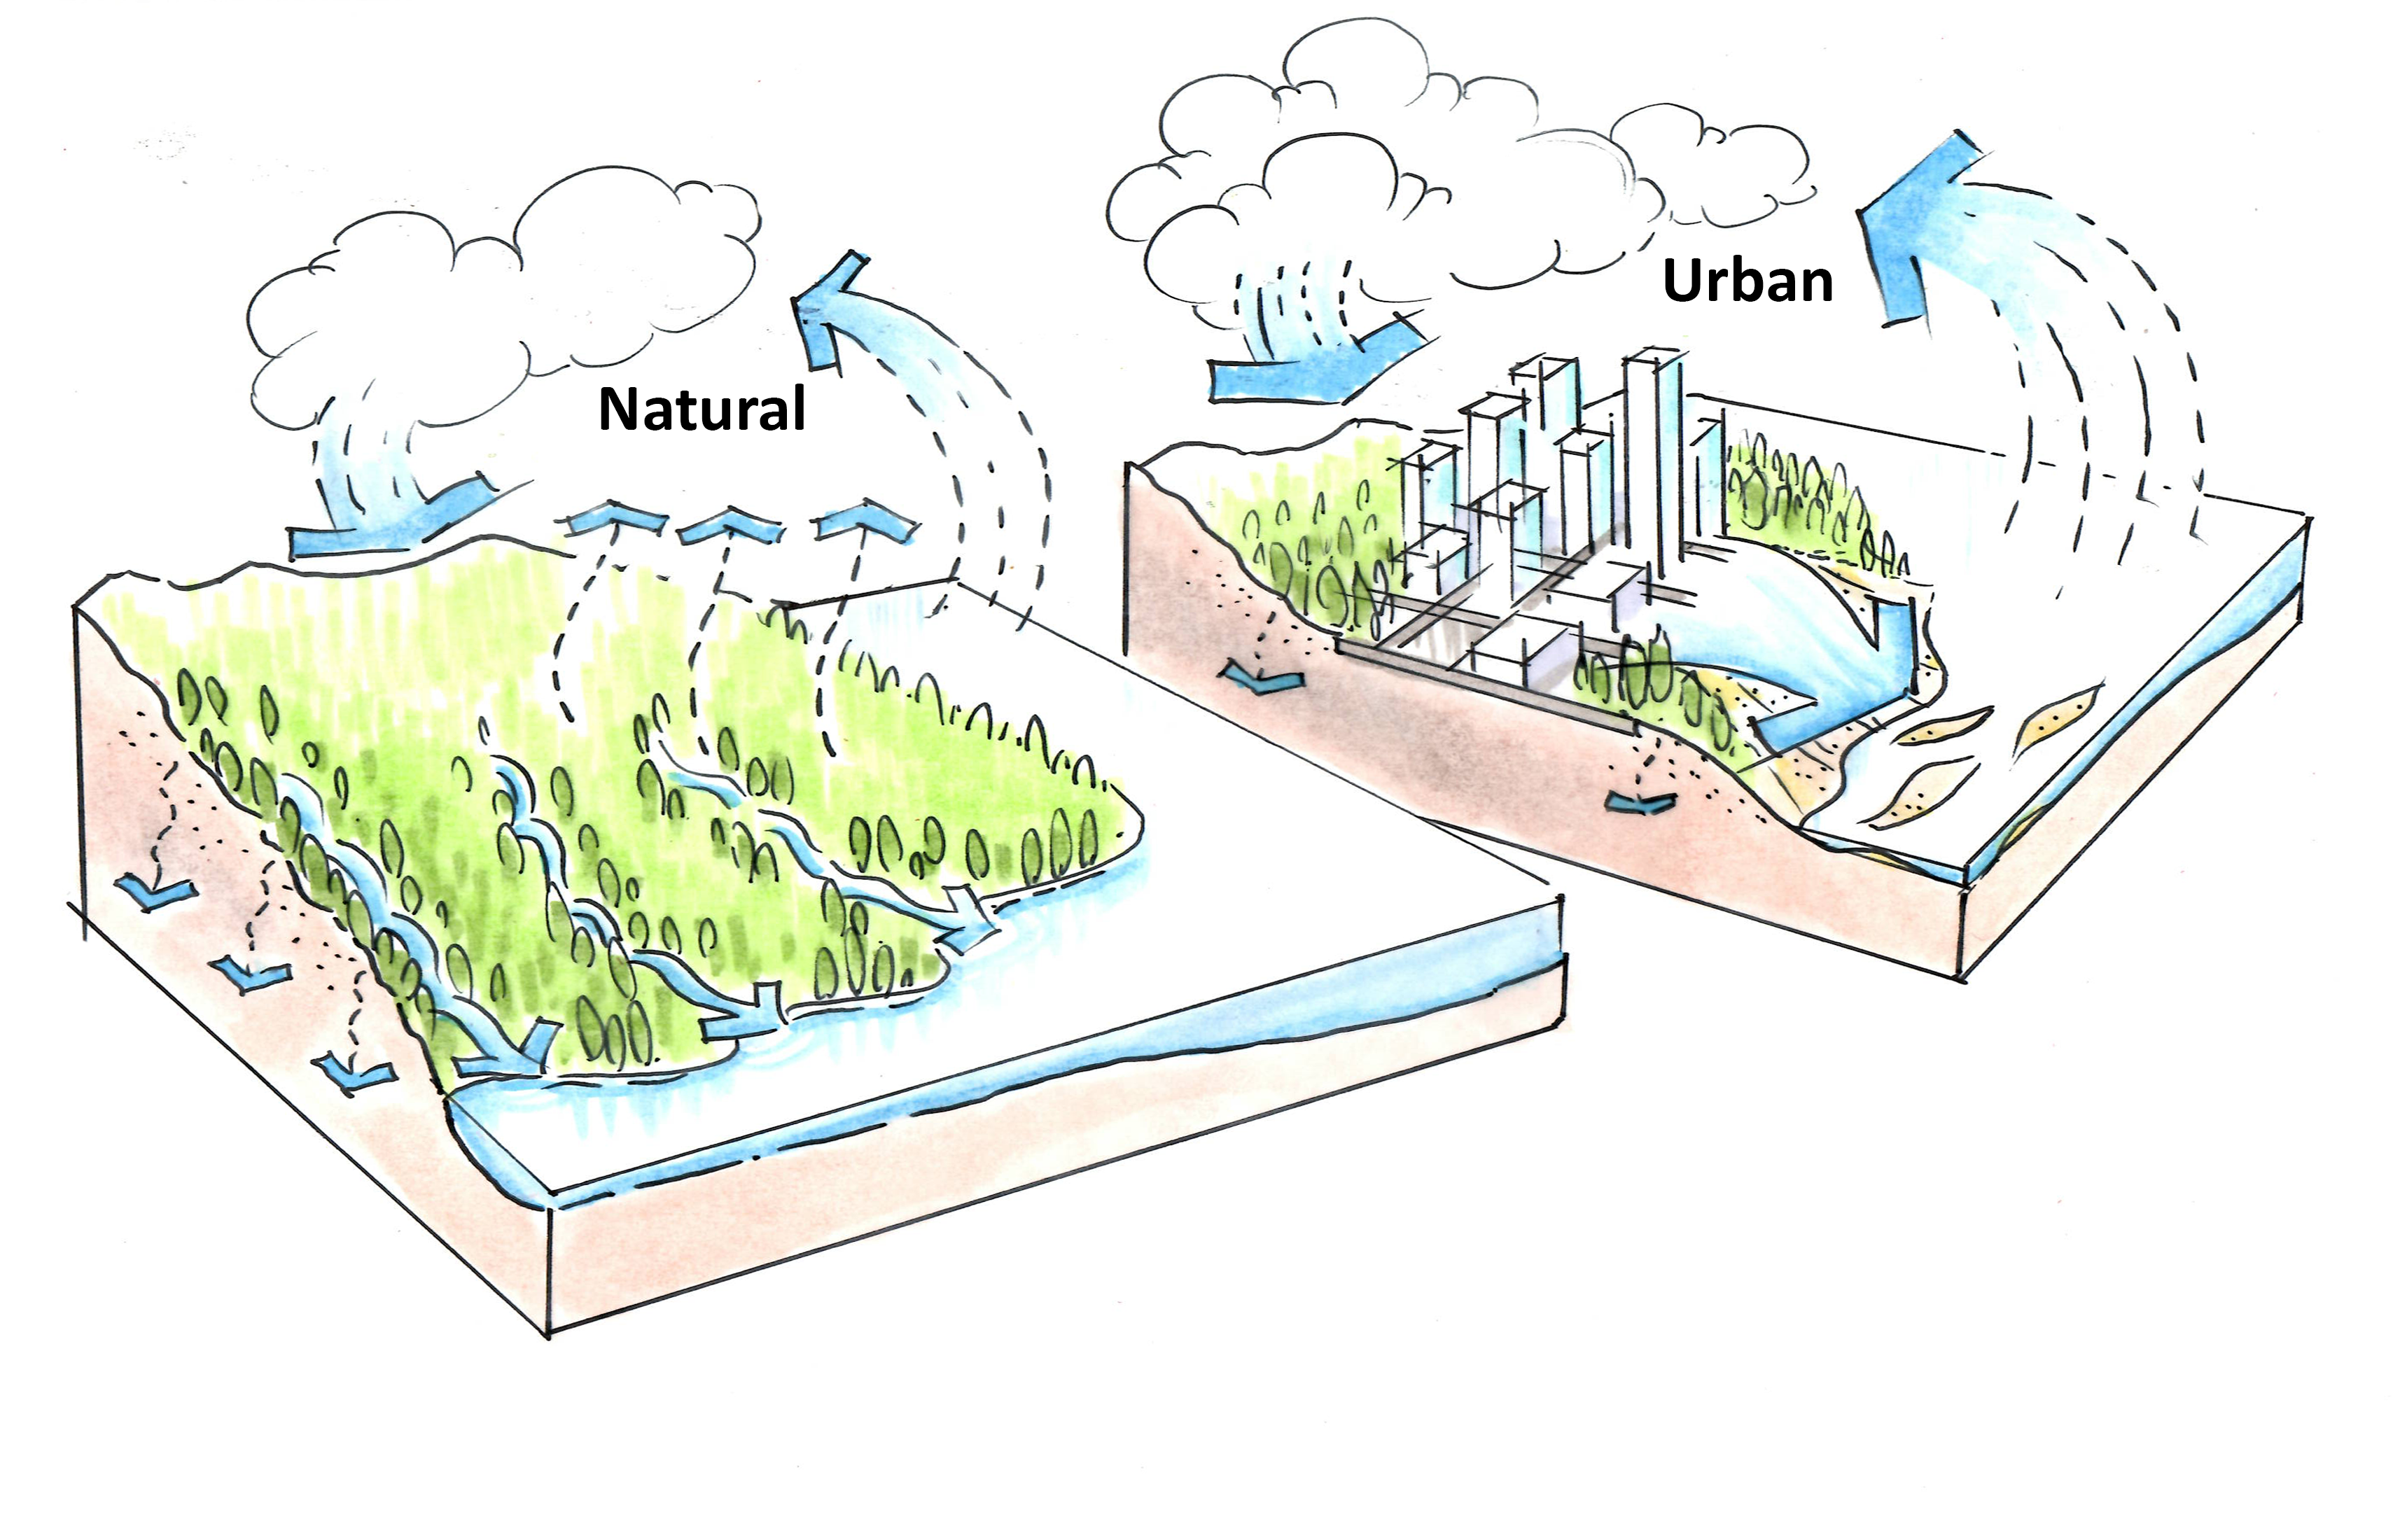 a drawing of the natural and urban watercycle